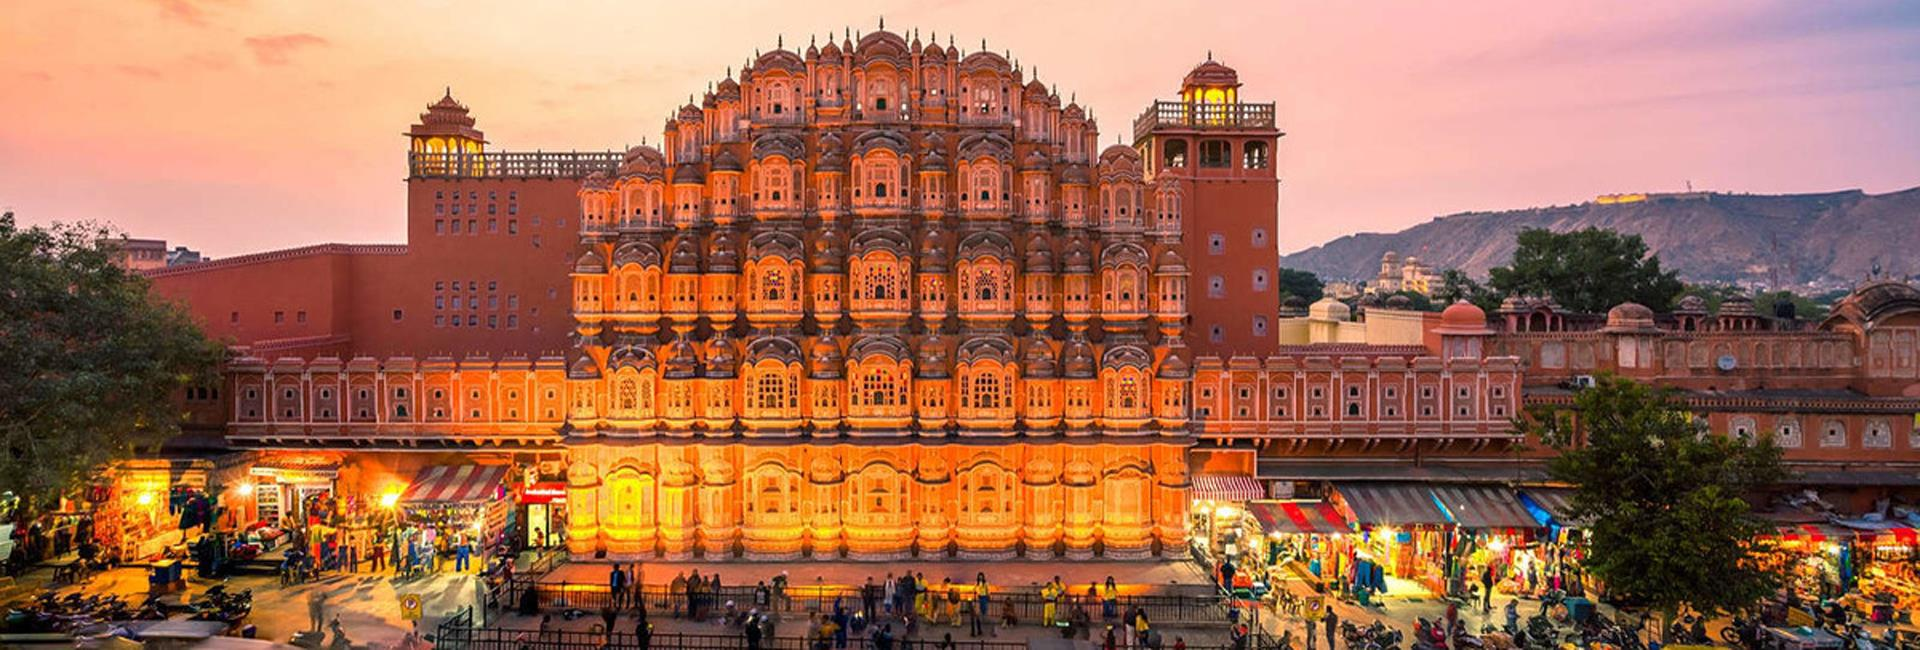 Royal Rajasthan tour package in India